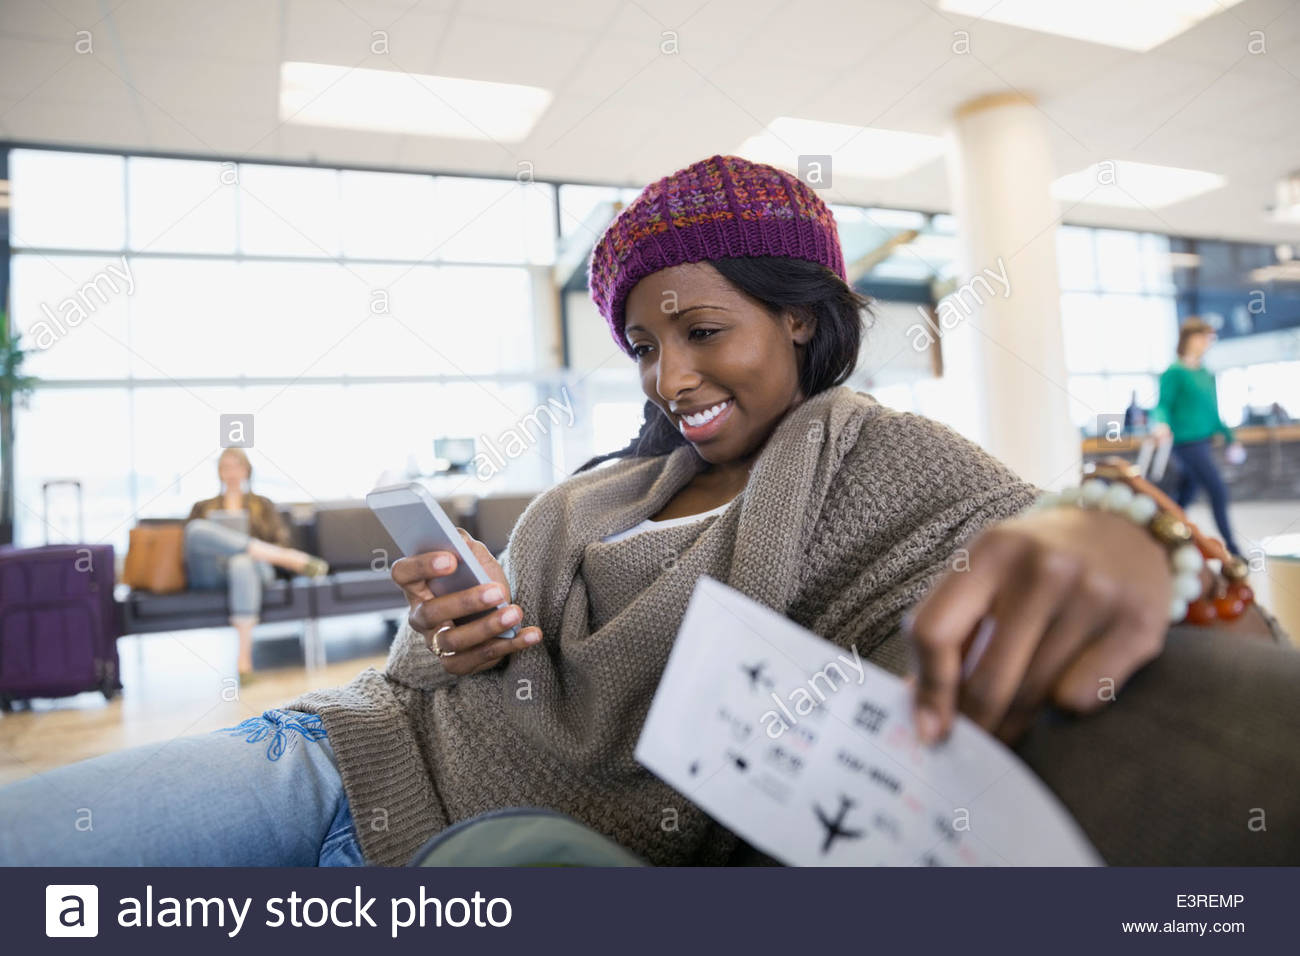 Woman text messaging with cell phone in airport - Stock Image